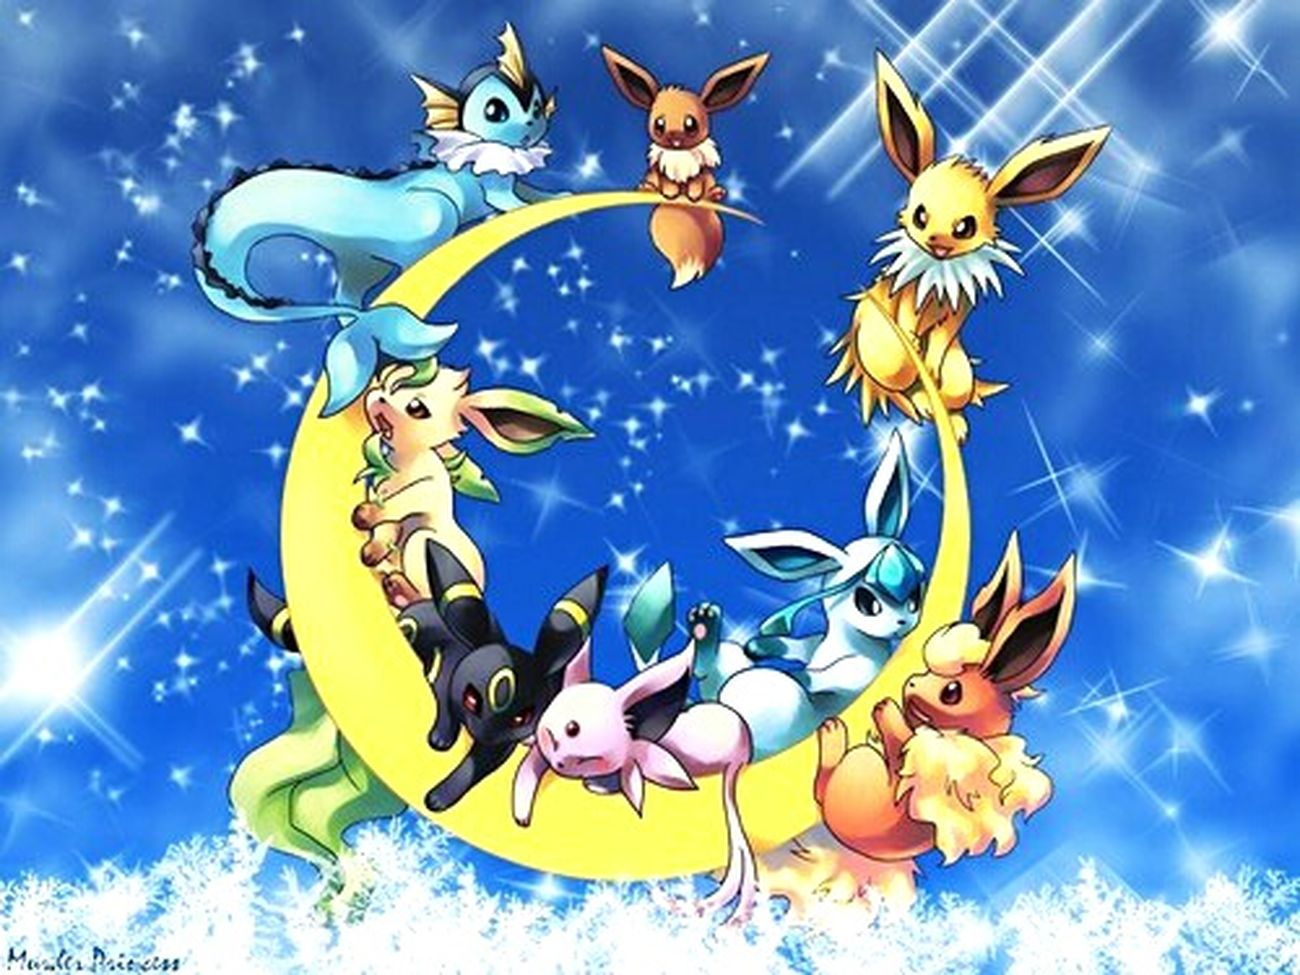 HD Draw Dessin Background Backgrounds No People Sky Pokémon Eeveelutions Horizontal